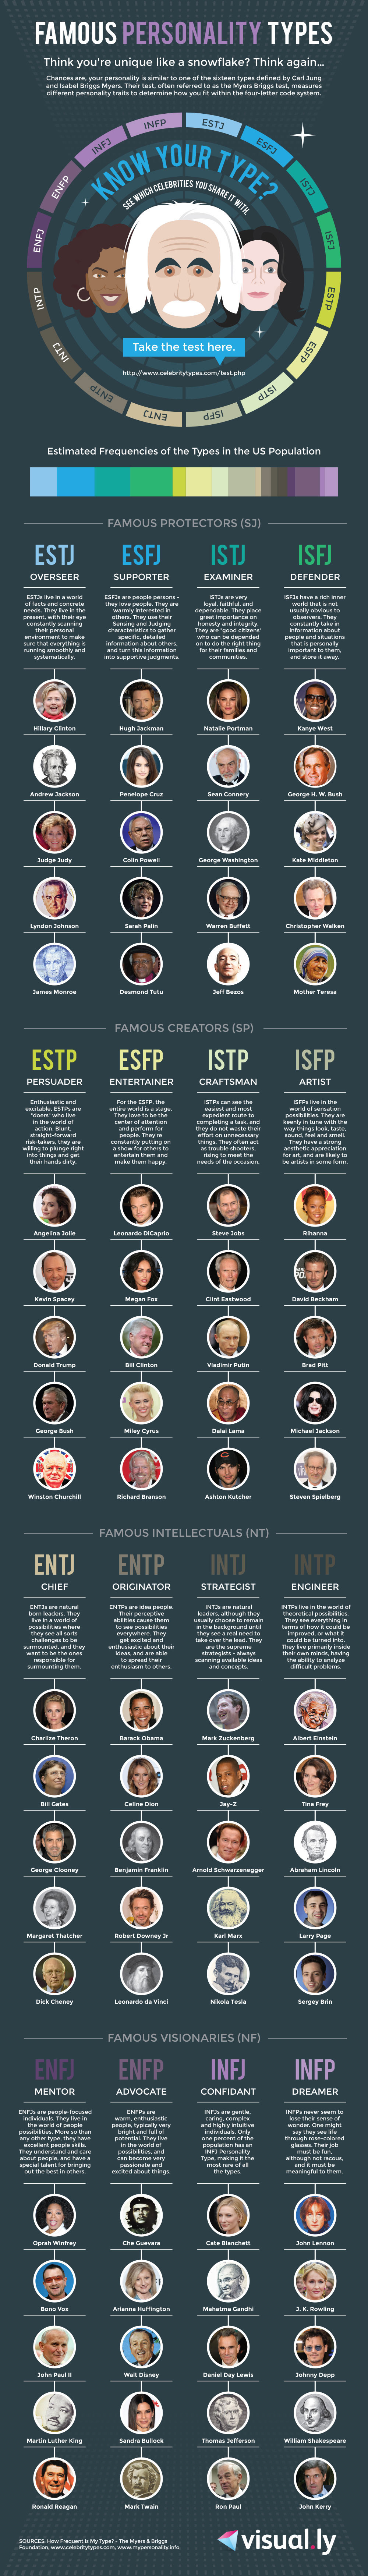 Famous Personality Types